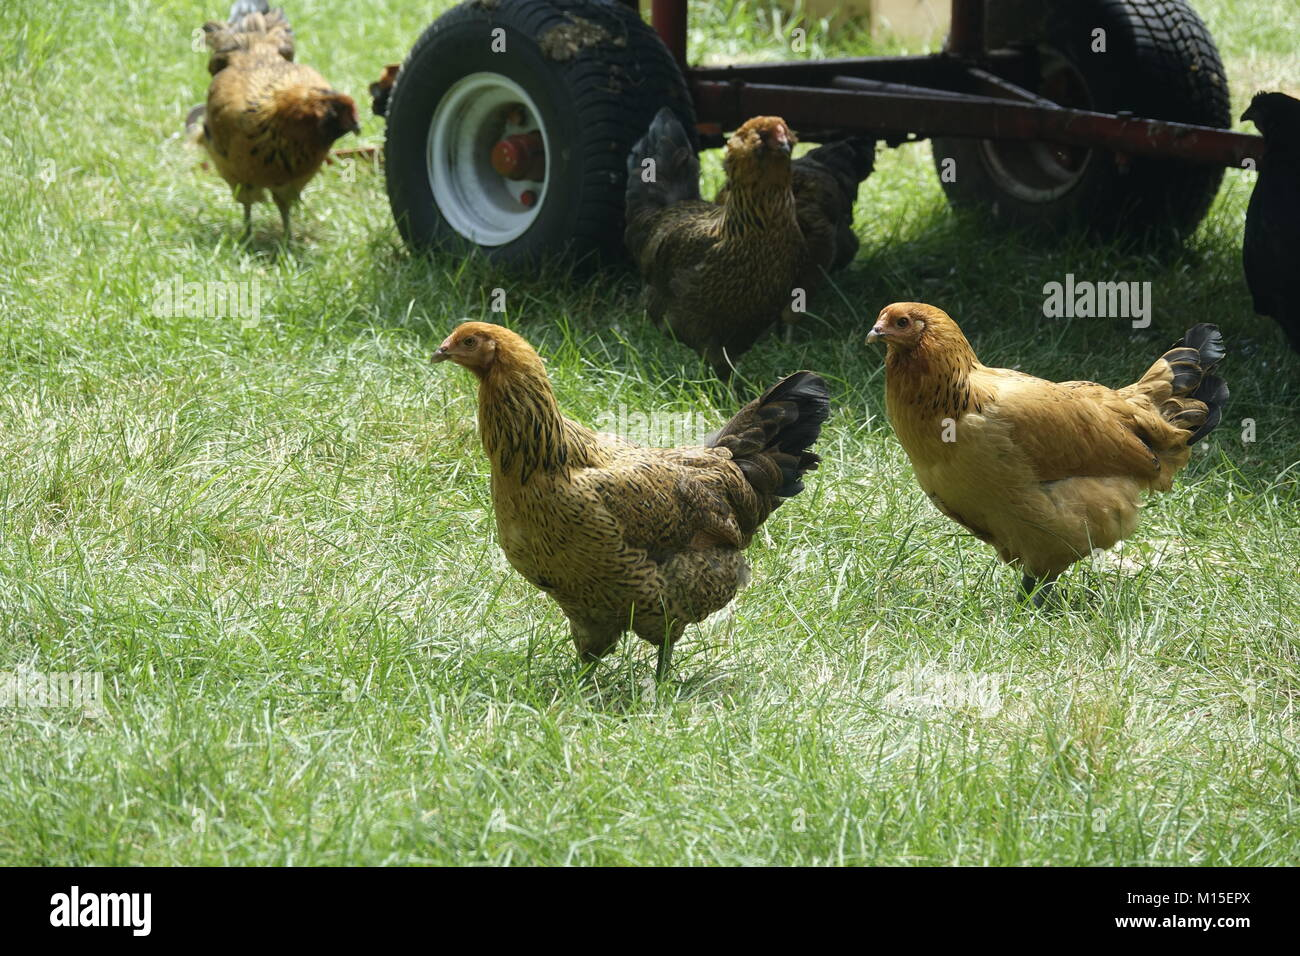 A Bunch of Roaming Brown Chickens on a Farm Stock Photo